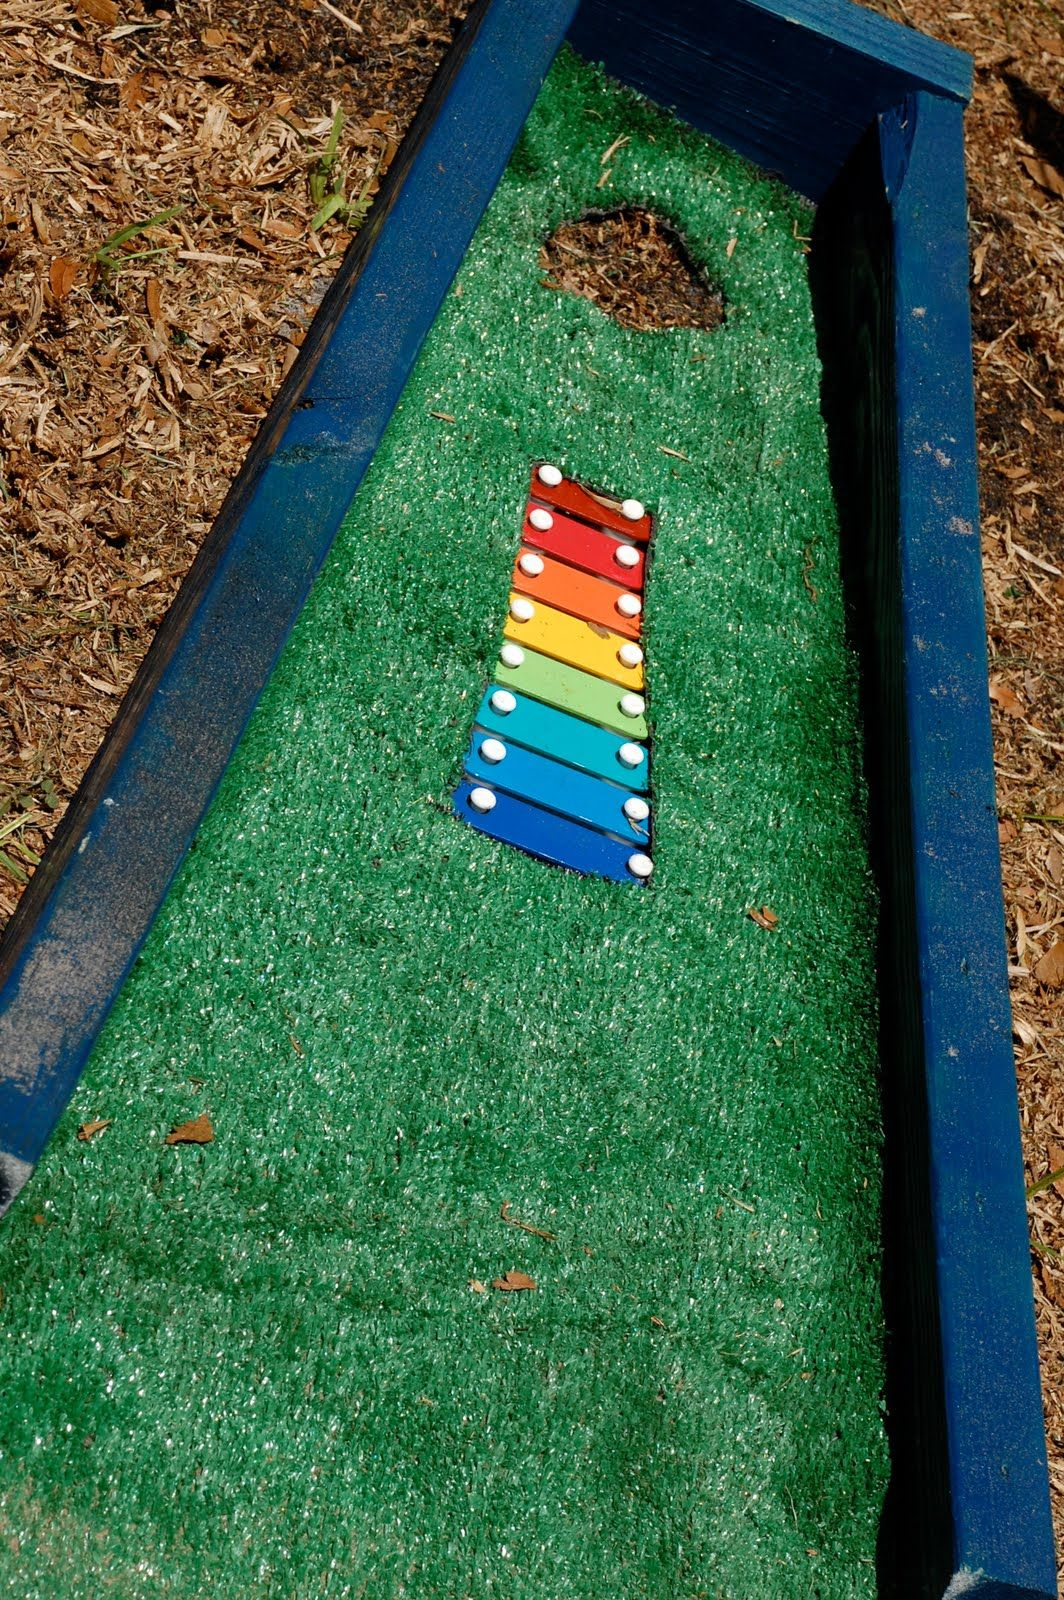 washer toss games washer game washer toss corn toss game corn